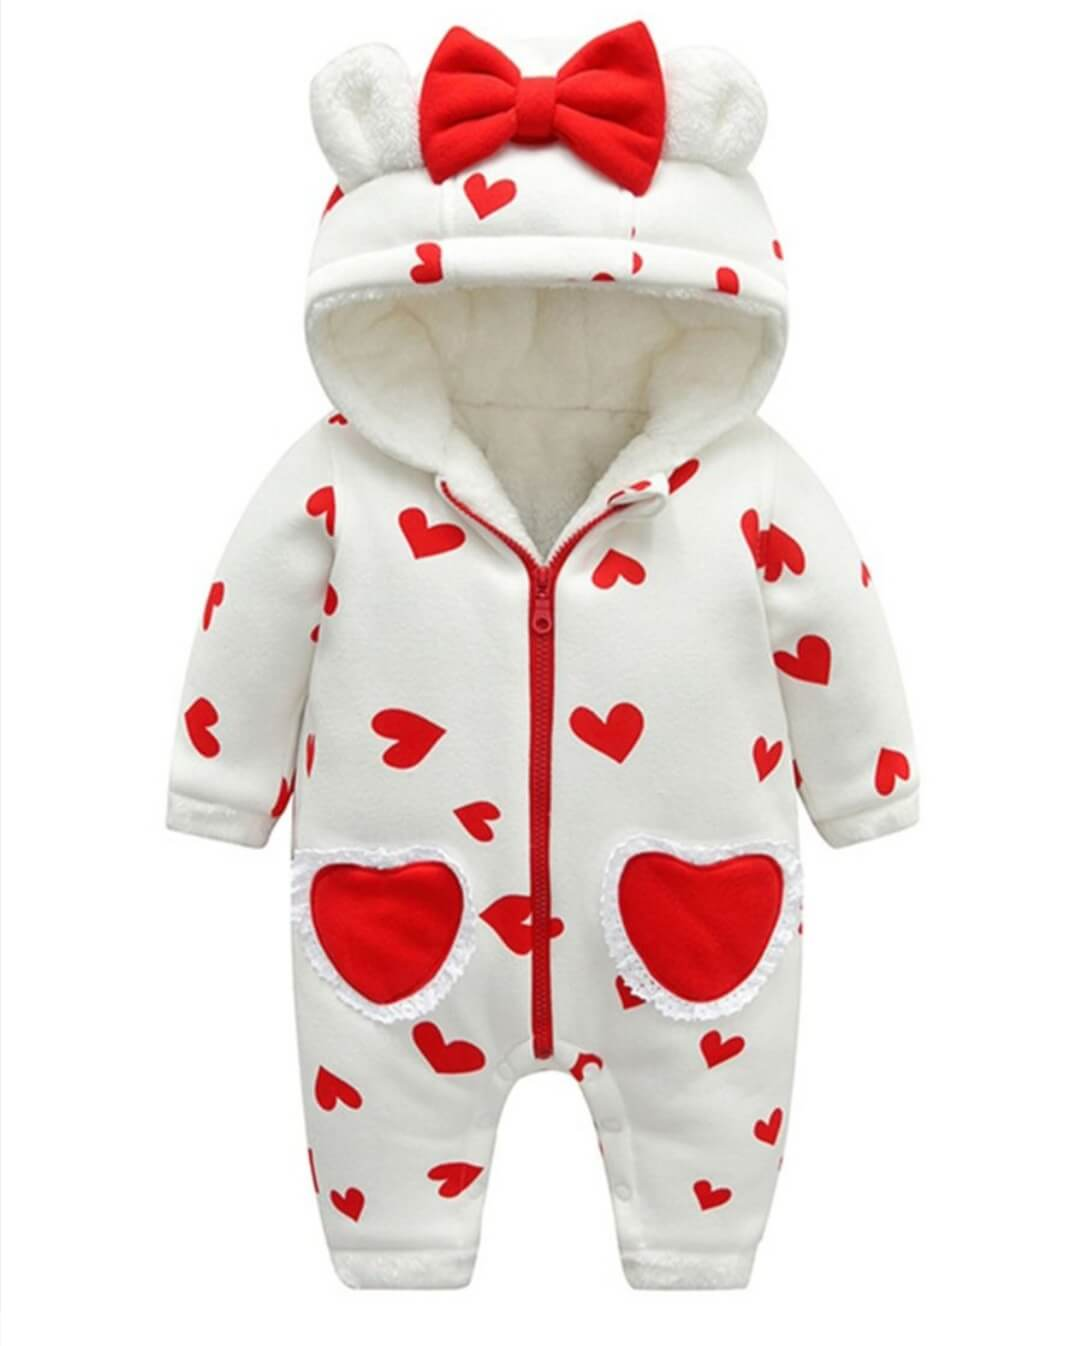 baby warm hearted hoodie romper for 6 to 6 months